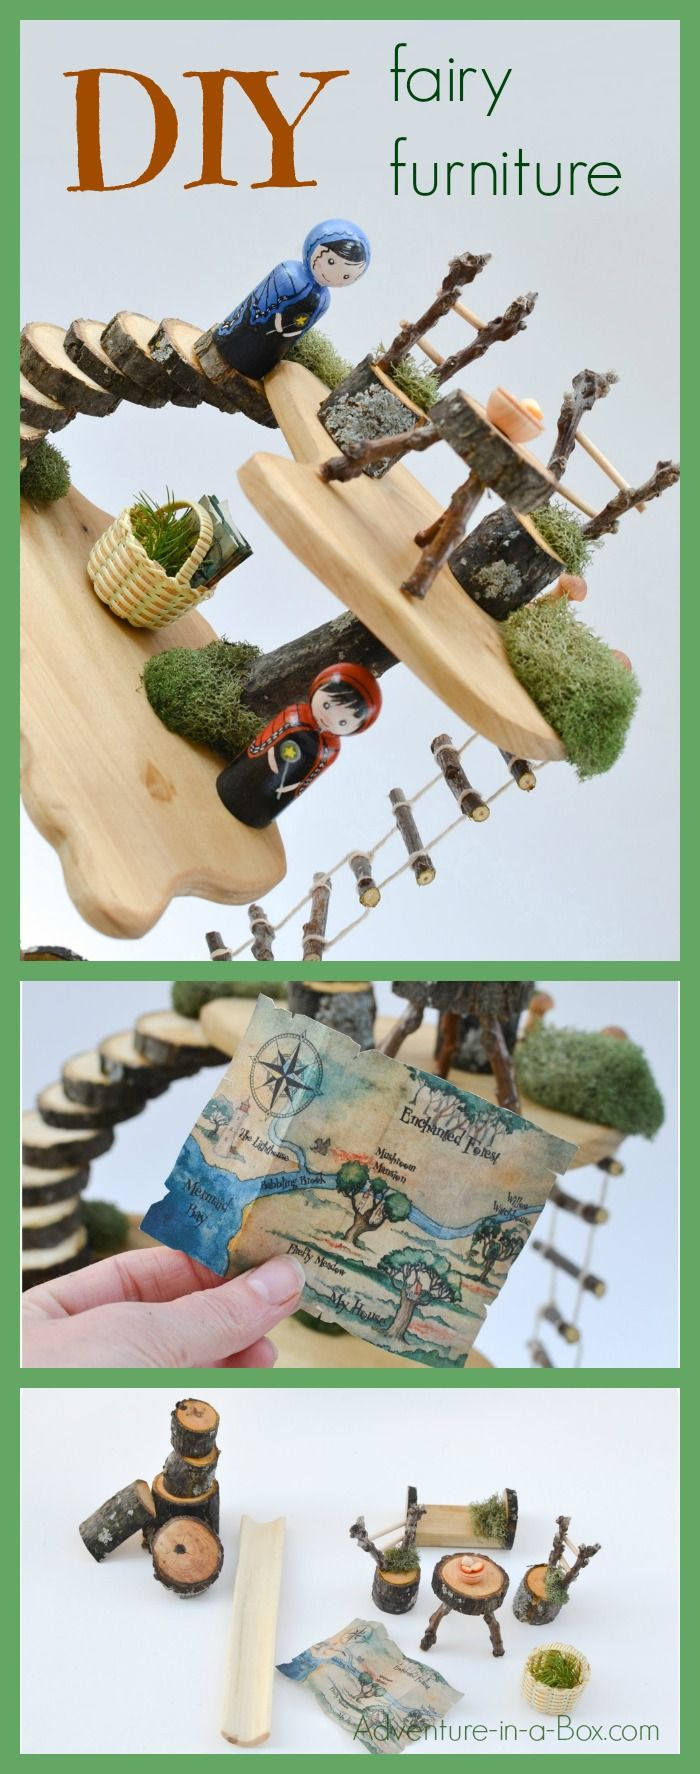 DIY Fairy Furniture: build homemade toyhouse furniture from natural materials…